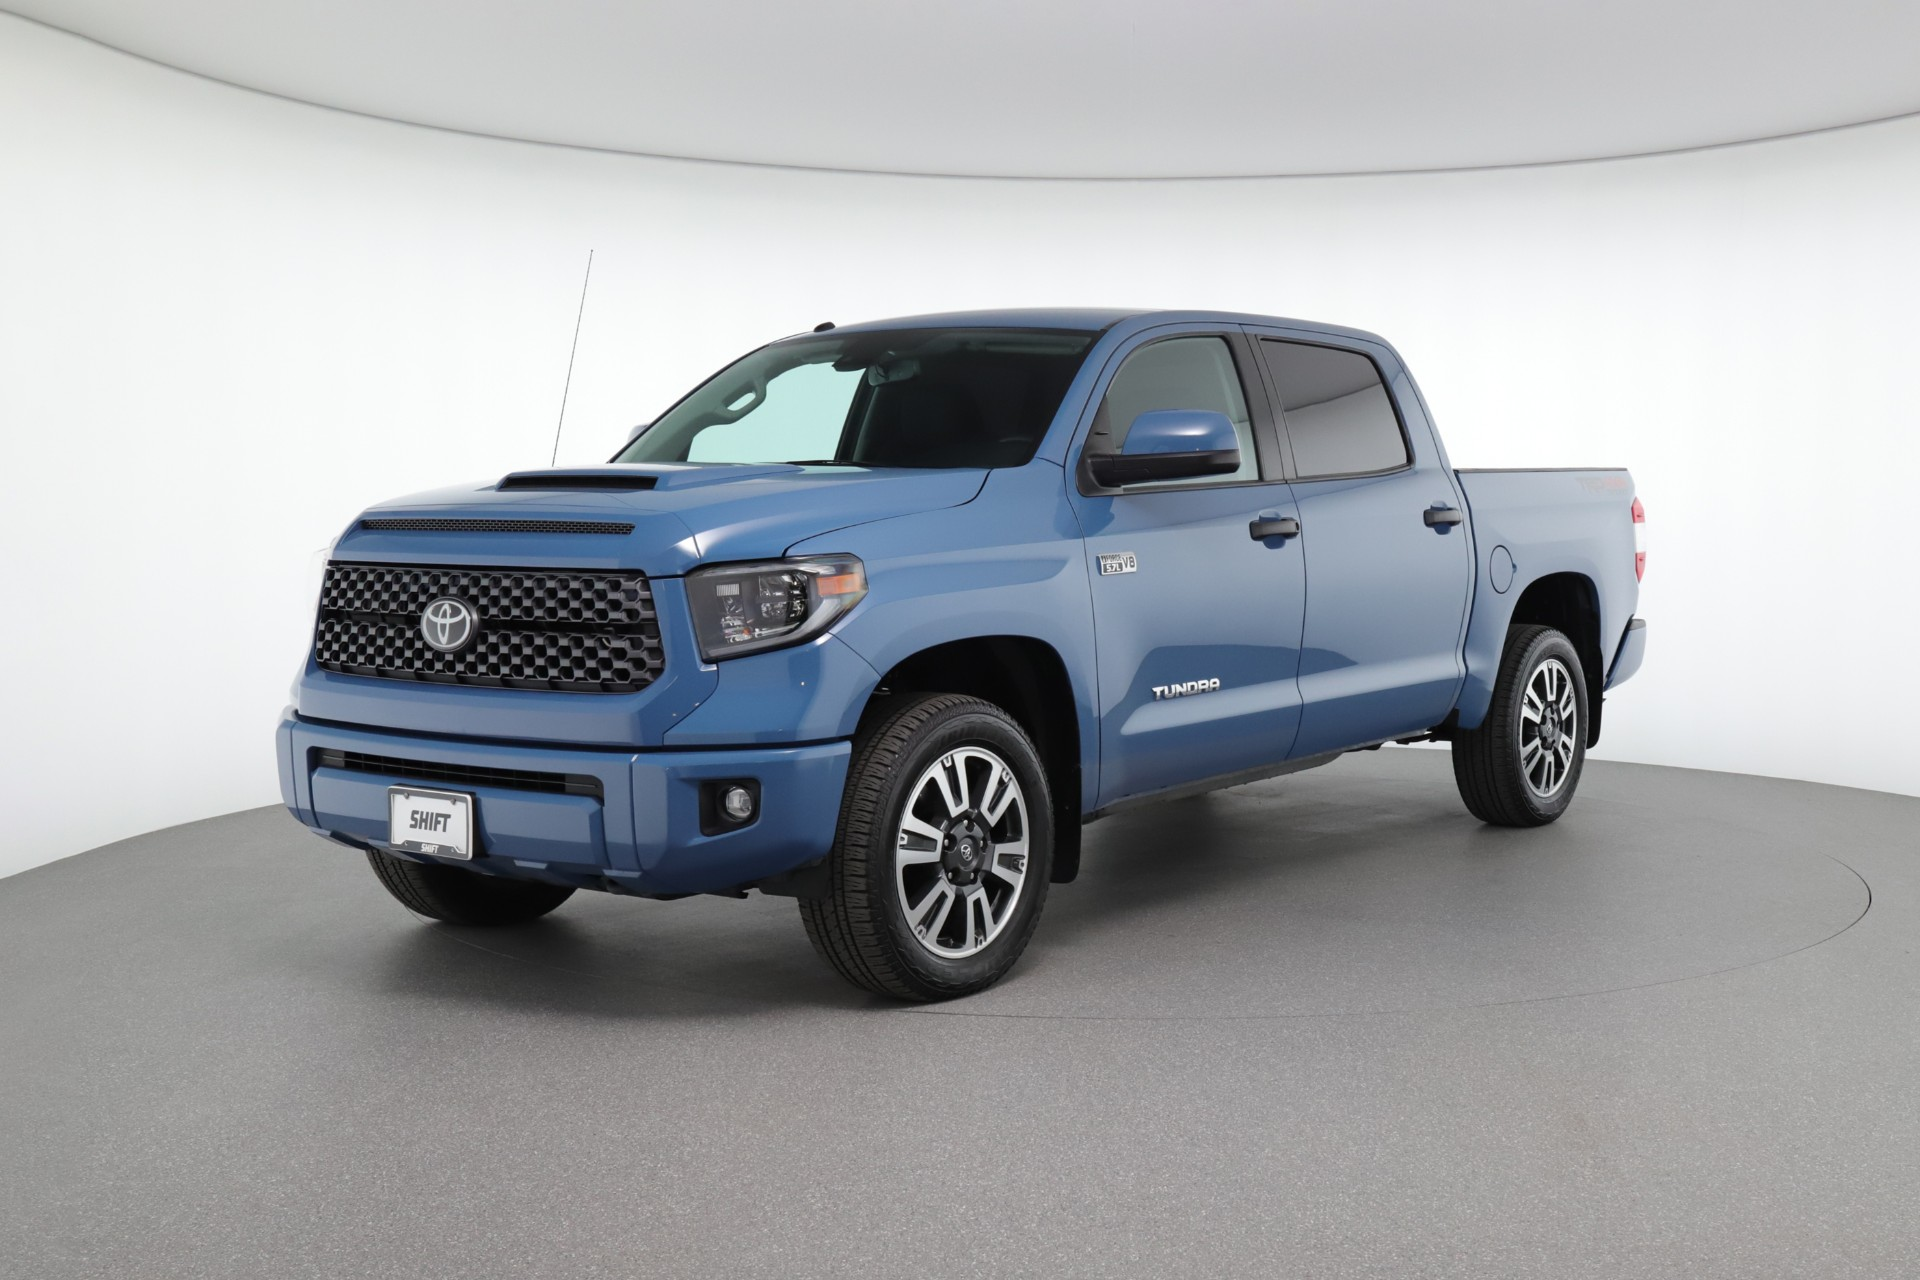 Toyota Tundra: The Only Guide You'll Need